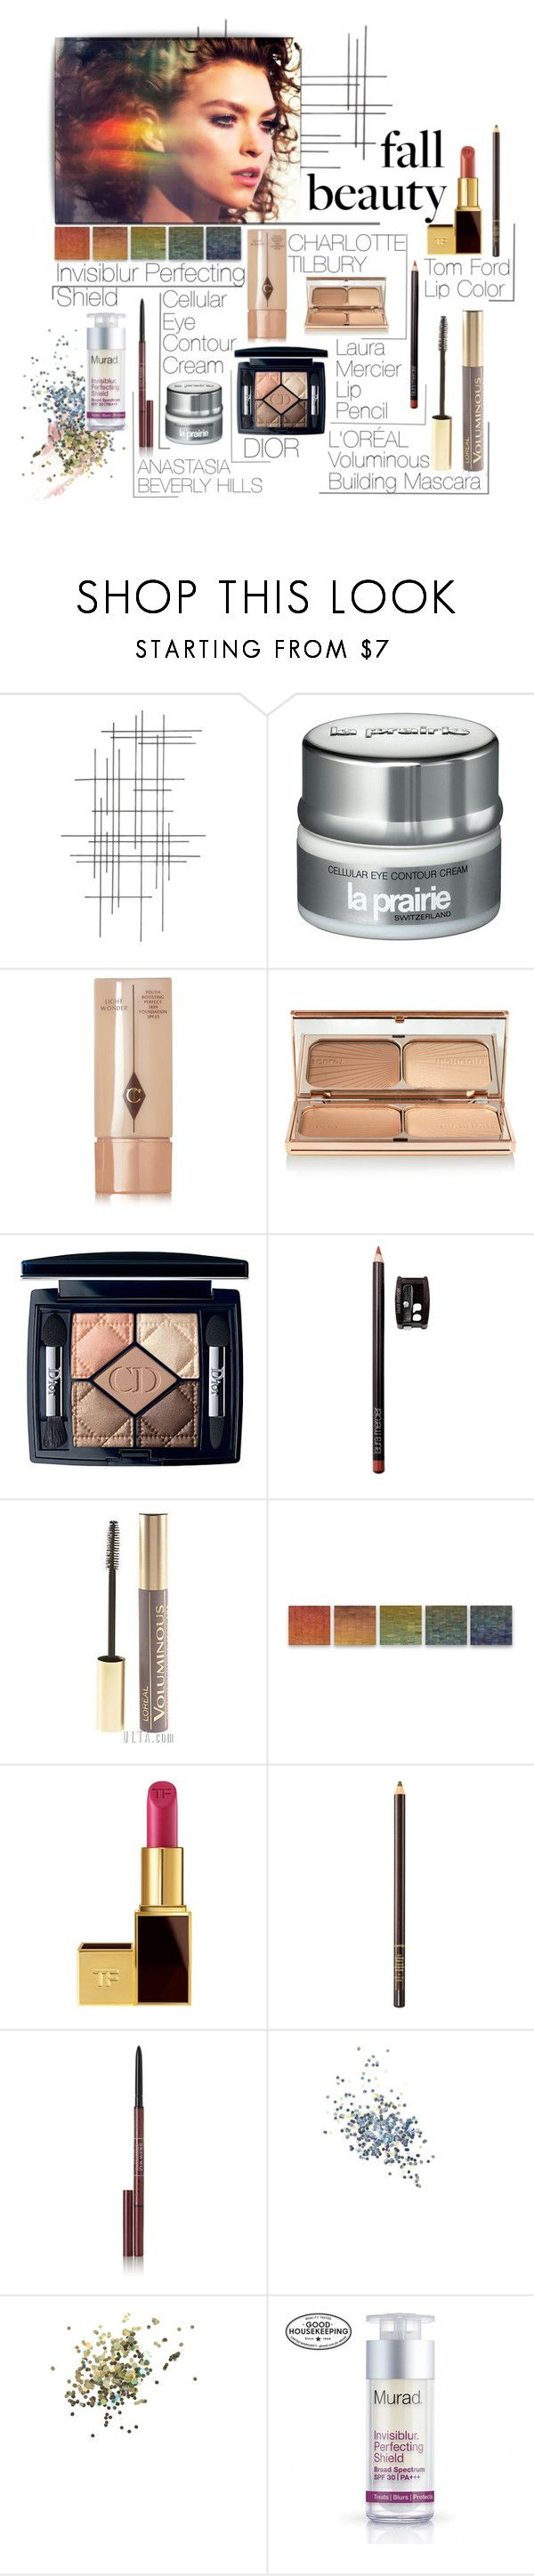 """Fall & Feel"" by catalinamihali ❤ liked on Polyvore featuring beauty, Crate and Barrel, La Prairie, Charlotte Tilbury, Laura Mercier, Libertine, Robert A. Brown and Anne Moran, Tom Ford, Anastasia Beverly Hills and Origins"